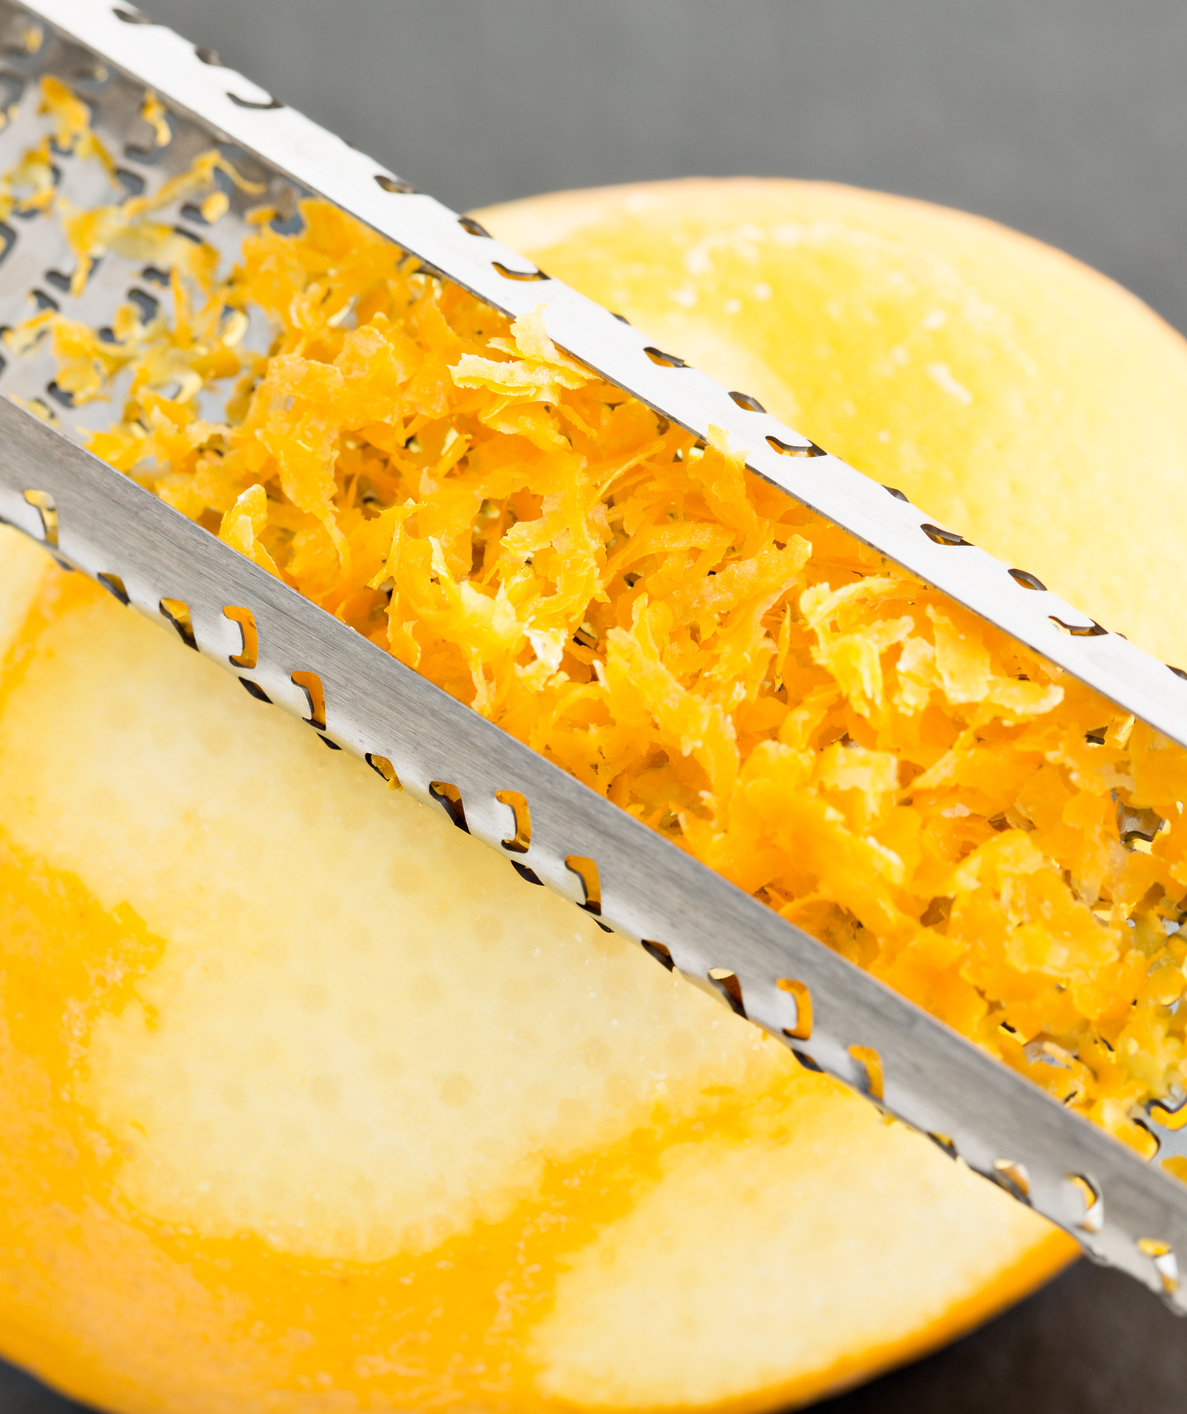 Why You Should Always Zest Citrus Fruits Before Juicing Them